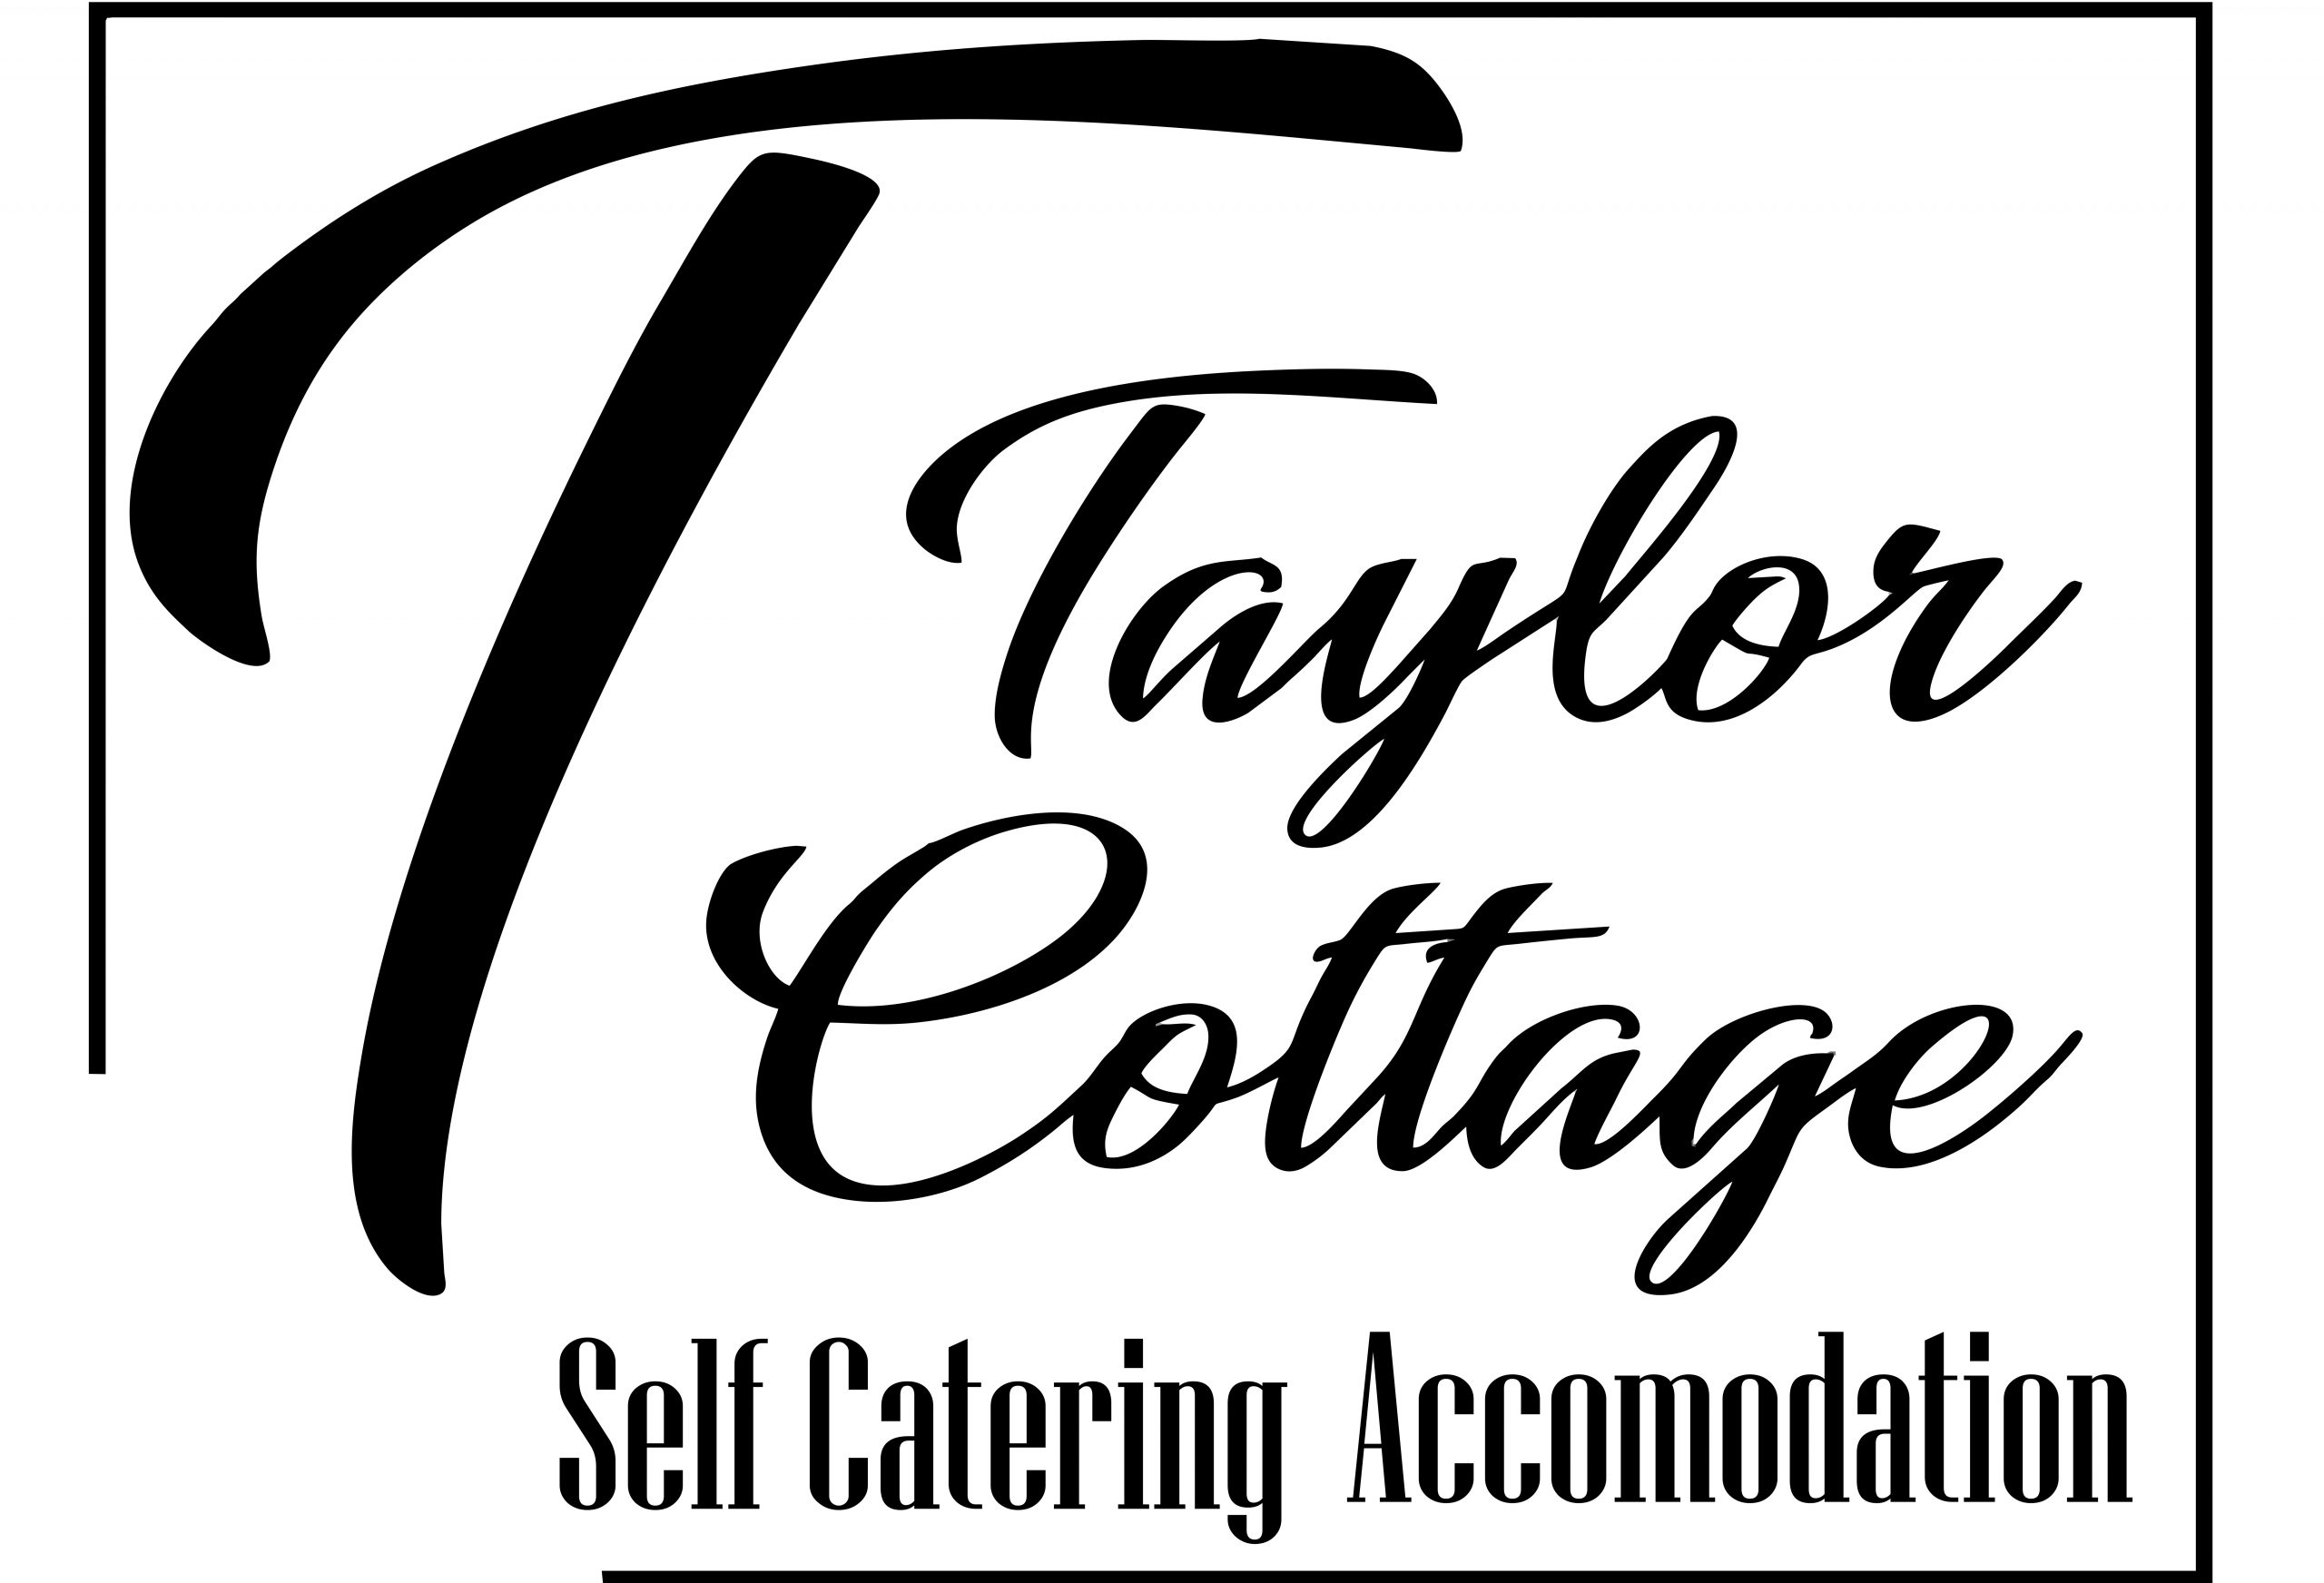 Friends of the College - Taylor Cottage